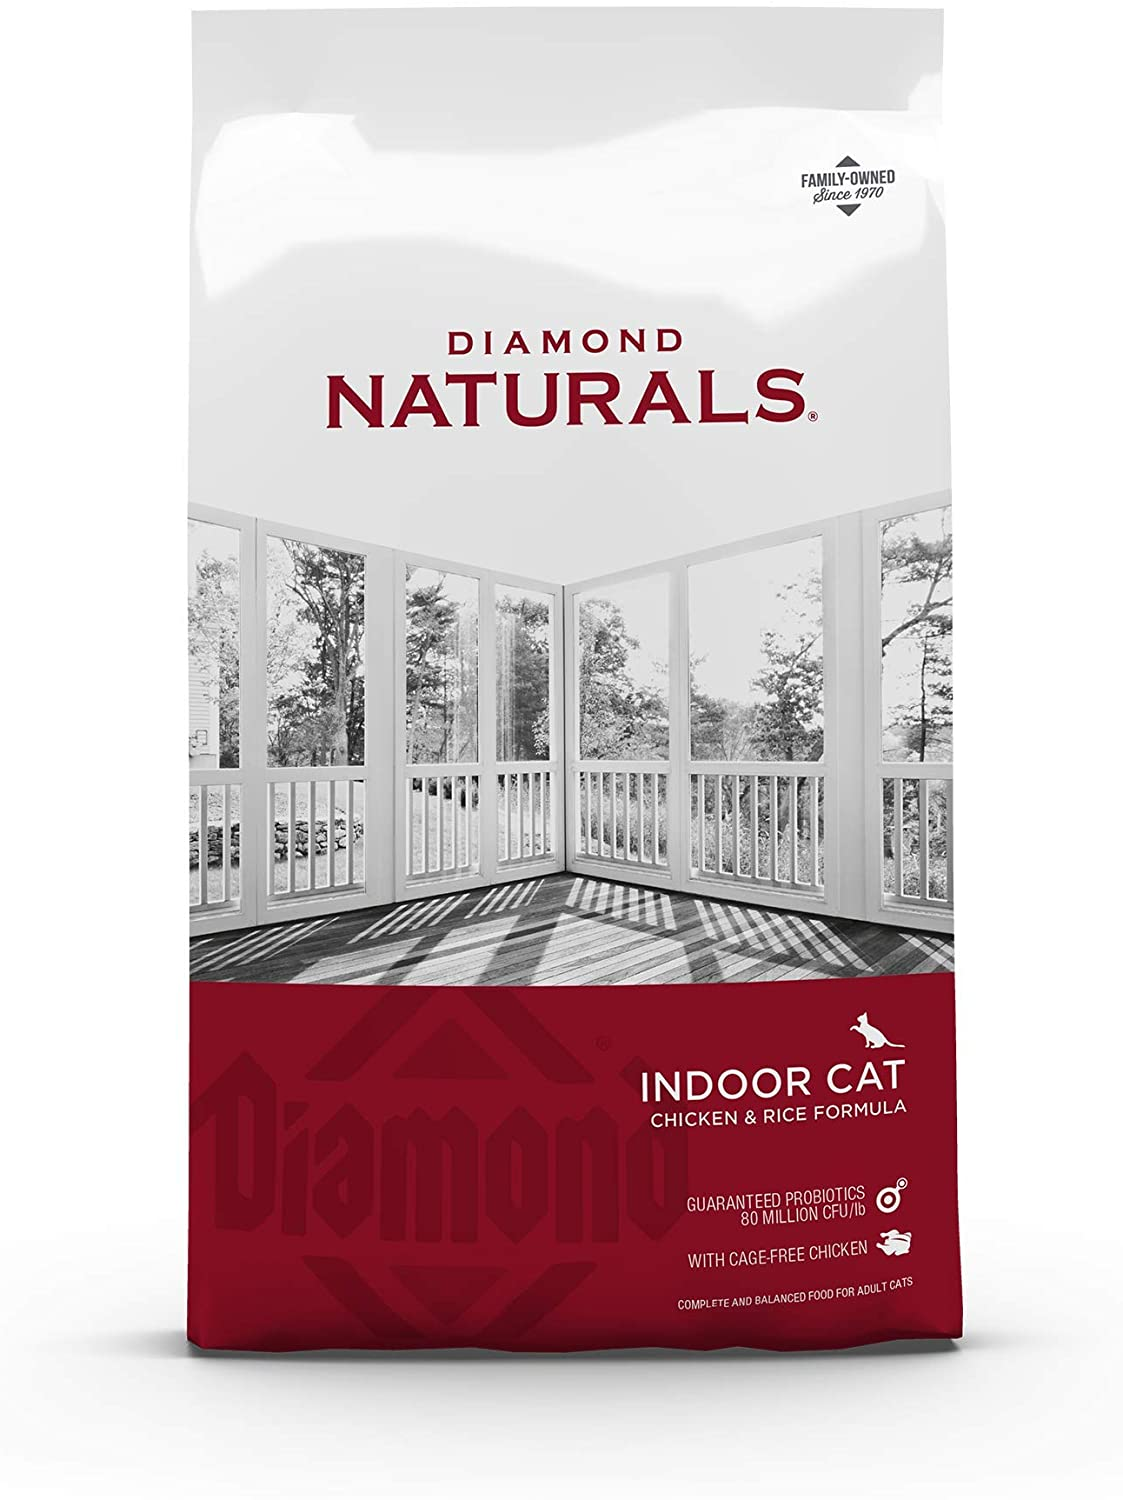 Diamond Naturals Premium Real Meat Recipe Dry Indoor Cat Food with Protein from Cage-Free Chicken, Antioxidants, Probiotics to Support Healthy Immune and Digestive Systems 6lb